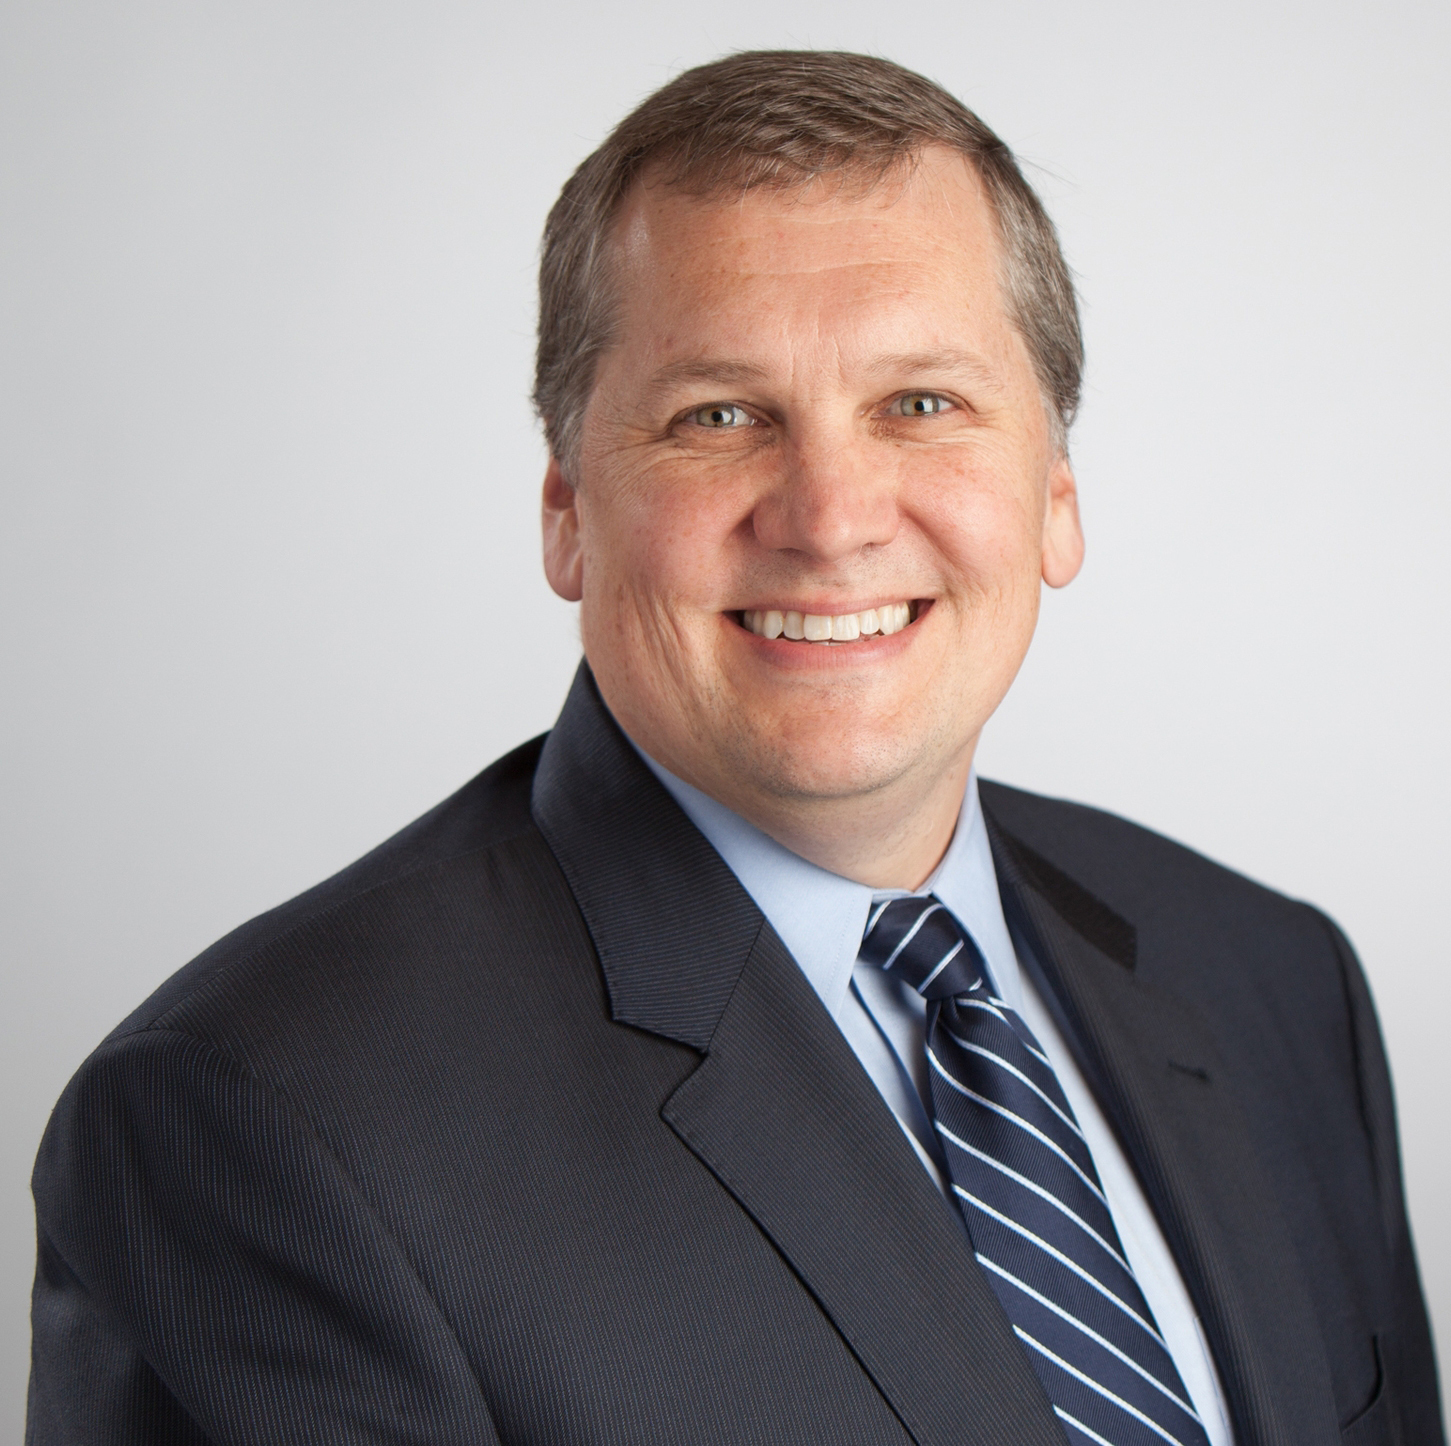 Peder Jungck, chief technology officer of BAE Systems' Intelligence & Security sector, has been named president of the Information Technology - Information Sharing and Analysis Center (IT-ISAC). (Photo: BAE Systems)